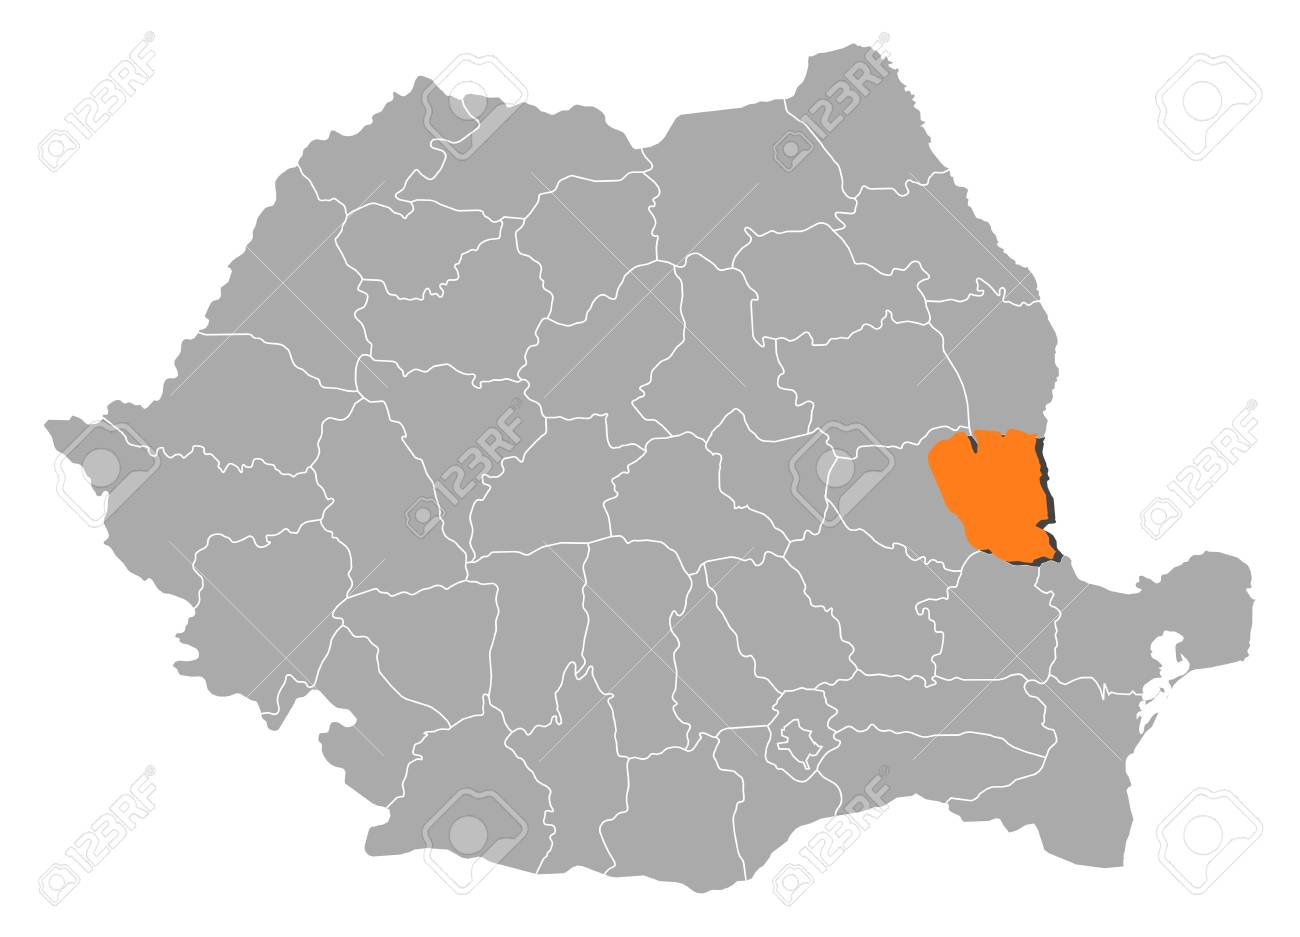 Political Map Of Romania With The Several Counties Where Galati Is Highlighted Stock Vector